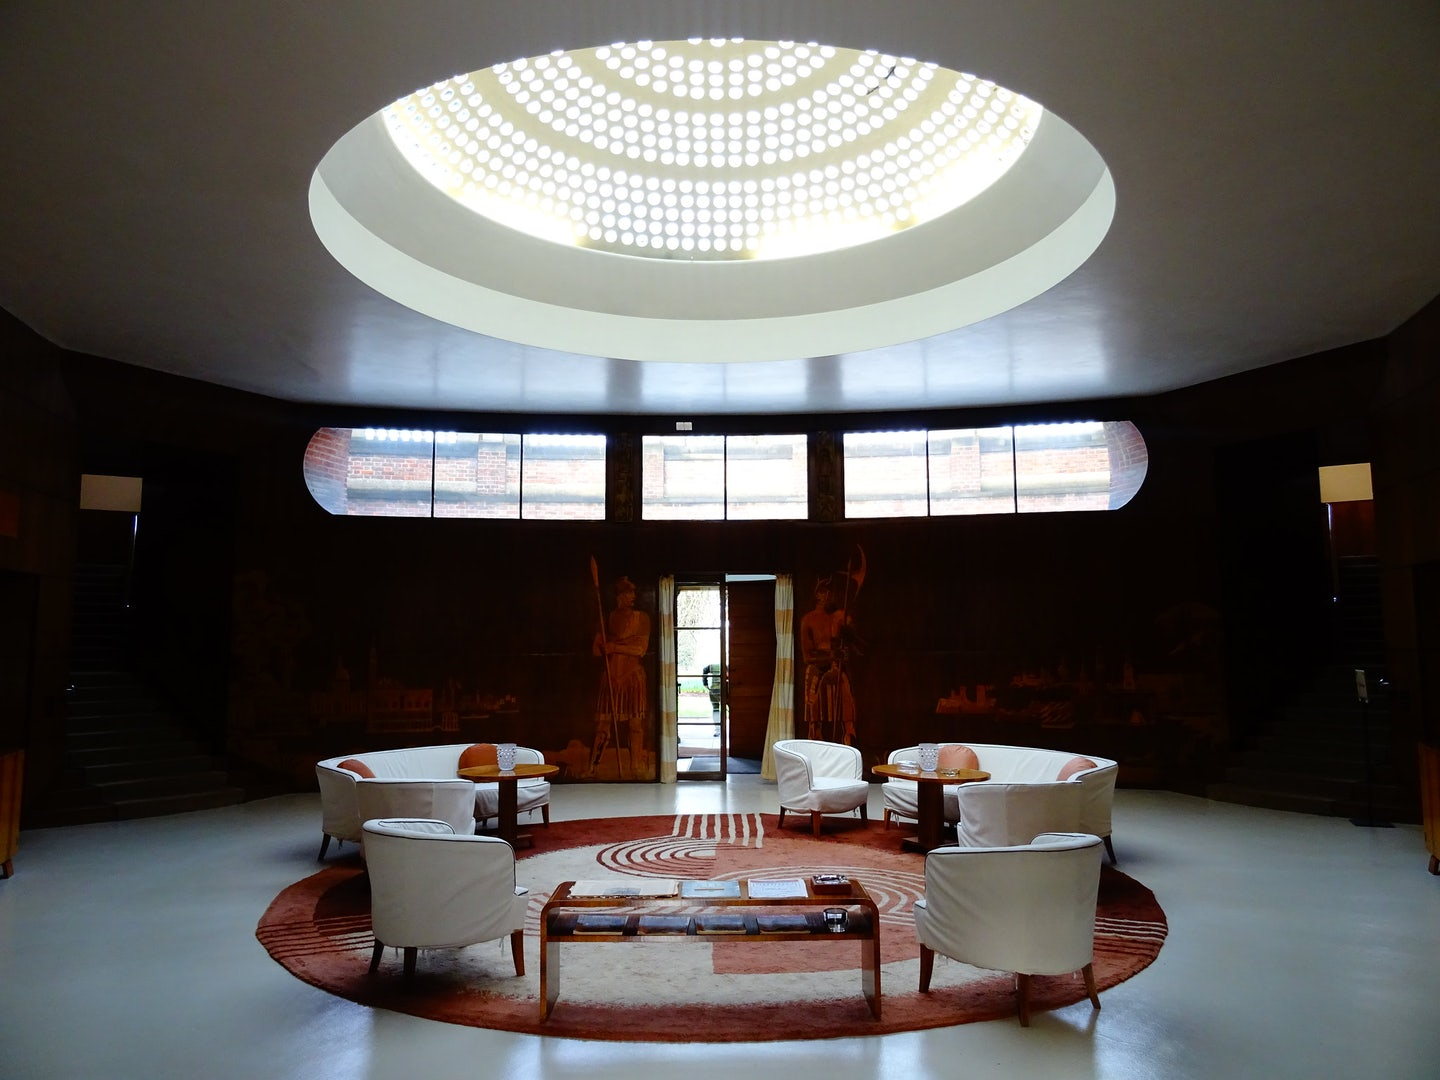 art deco interior of the Eltham Palace